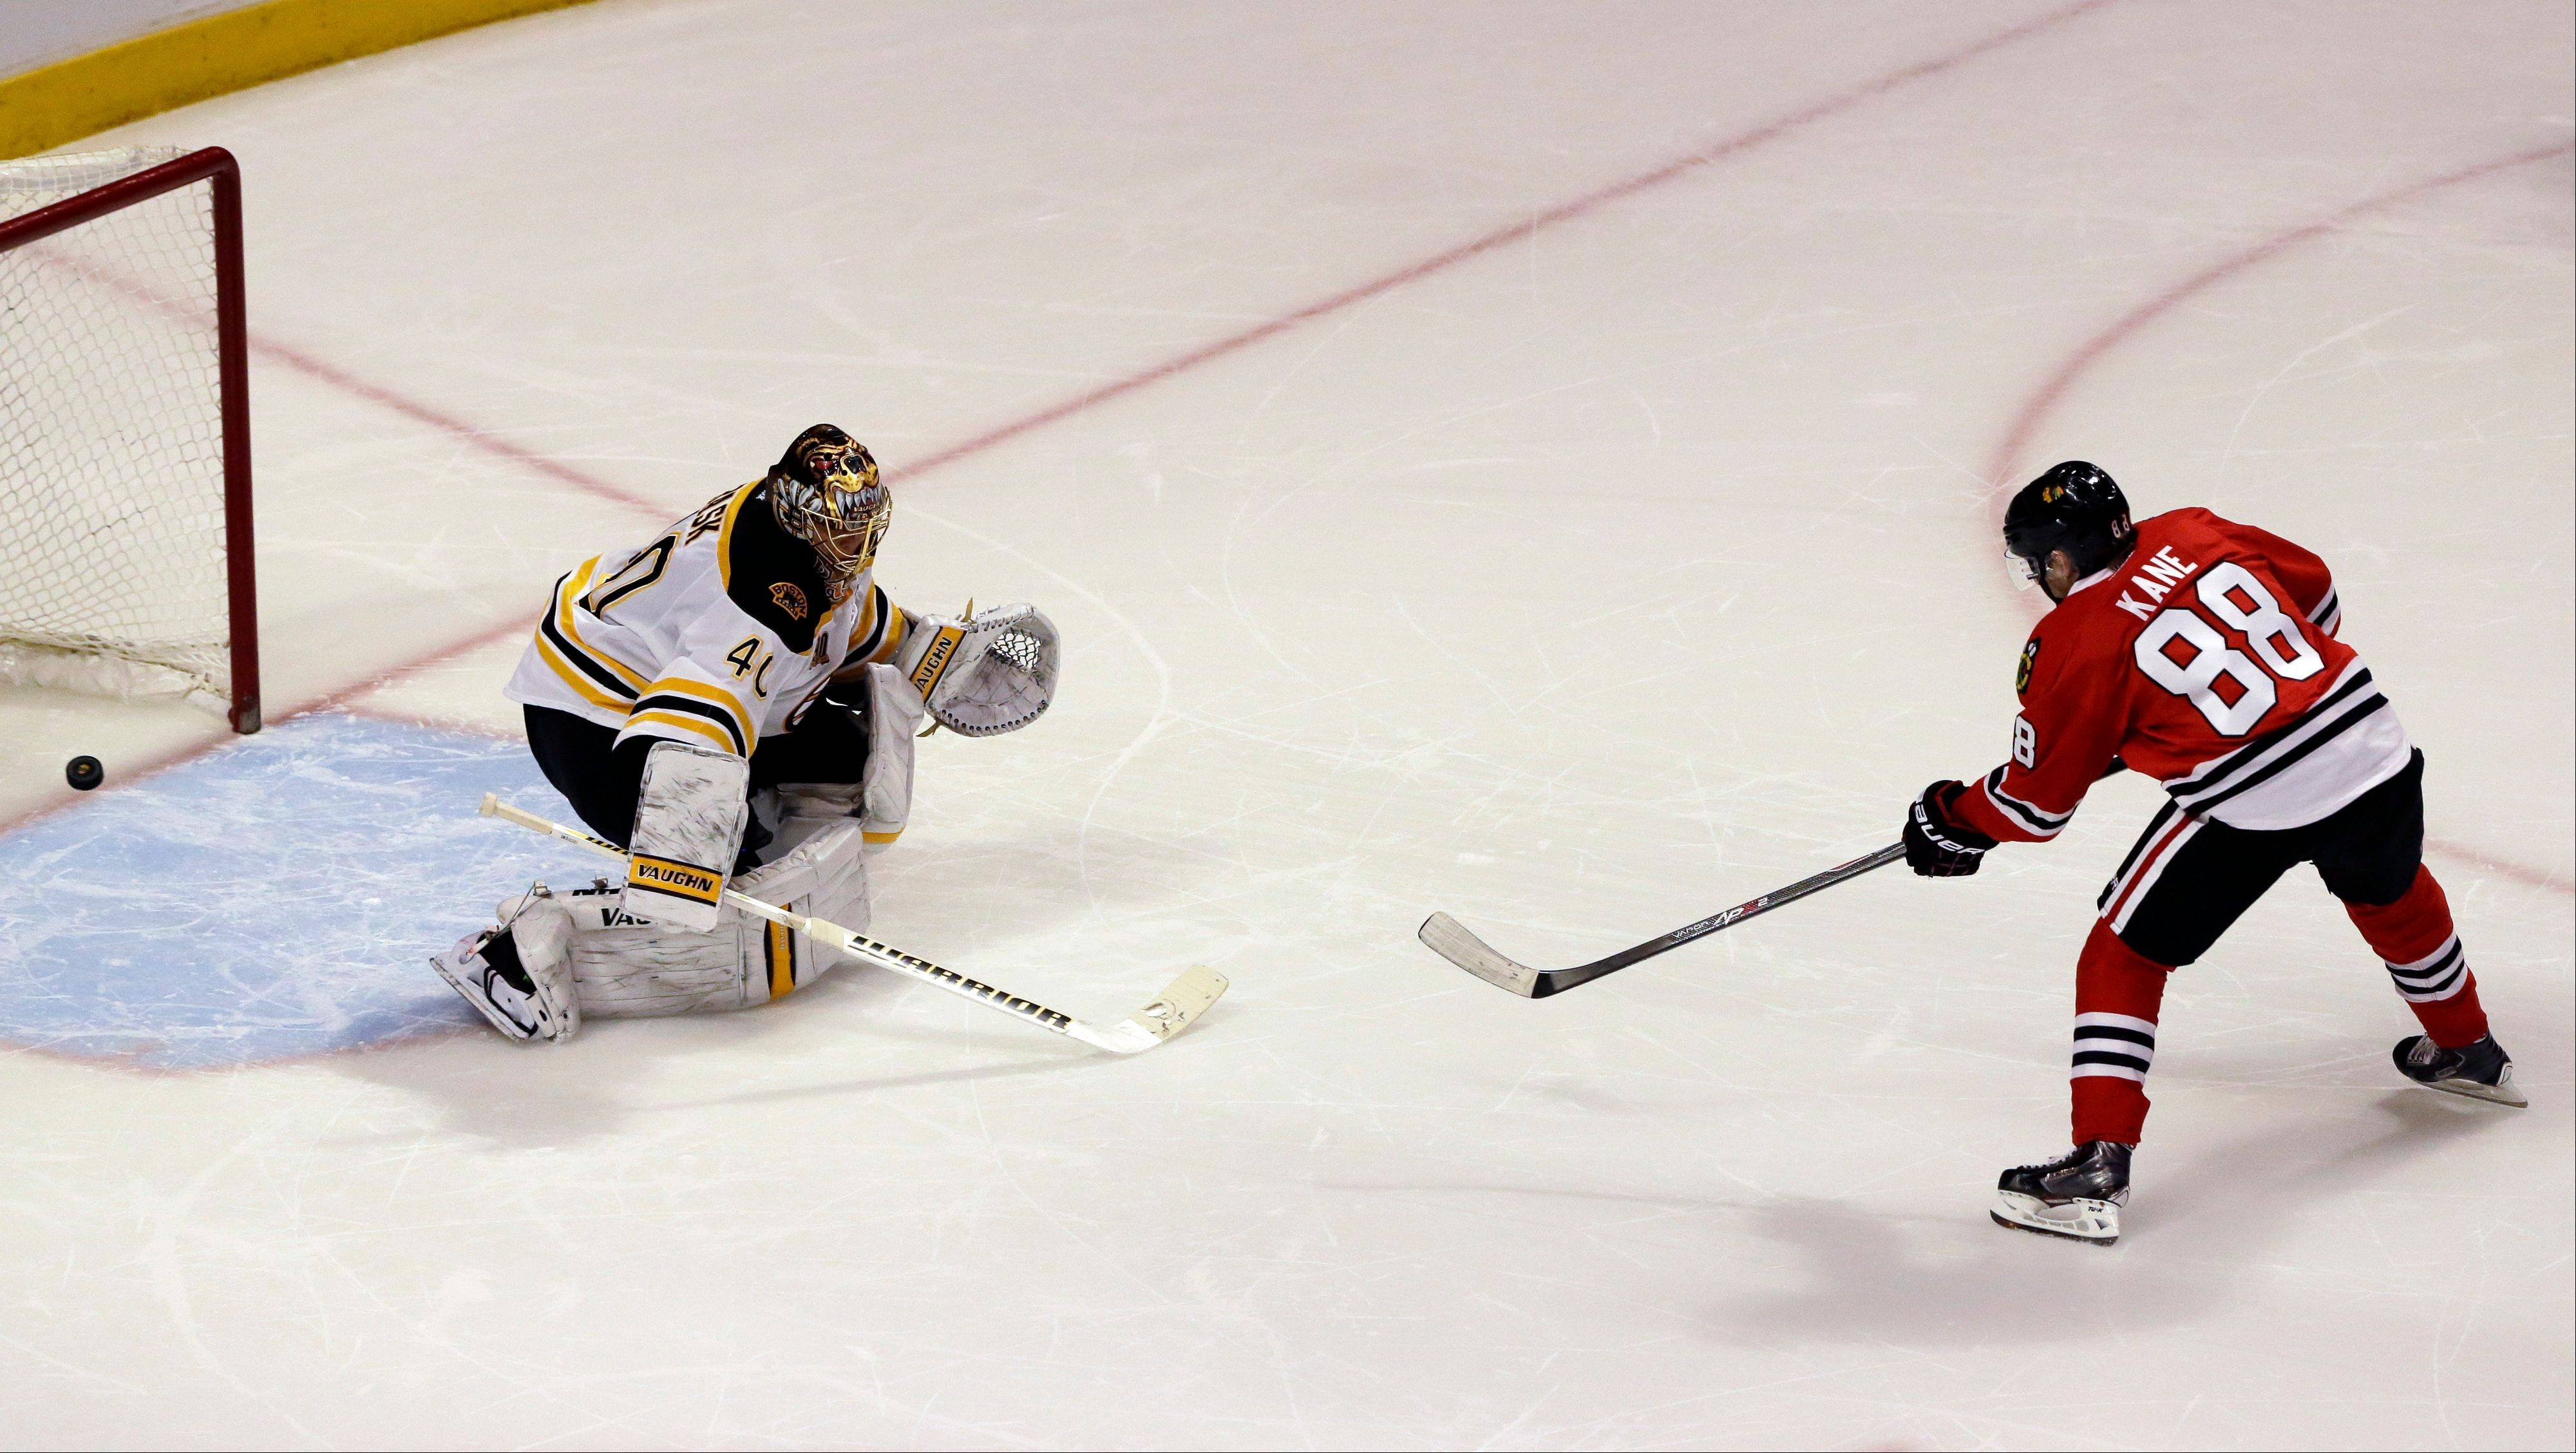 Blackhawks winger Patrick Kane scores against Boston Bruins goalie Tuukka Rask during the shootout of an NHL hockey game in Chicago, Sunday, Jan. 19, 2014. The Blackhawks won 3-2.